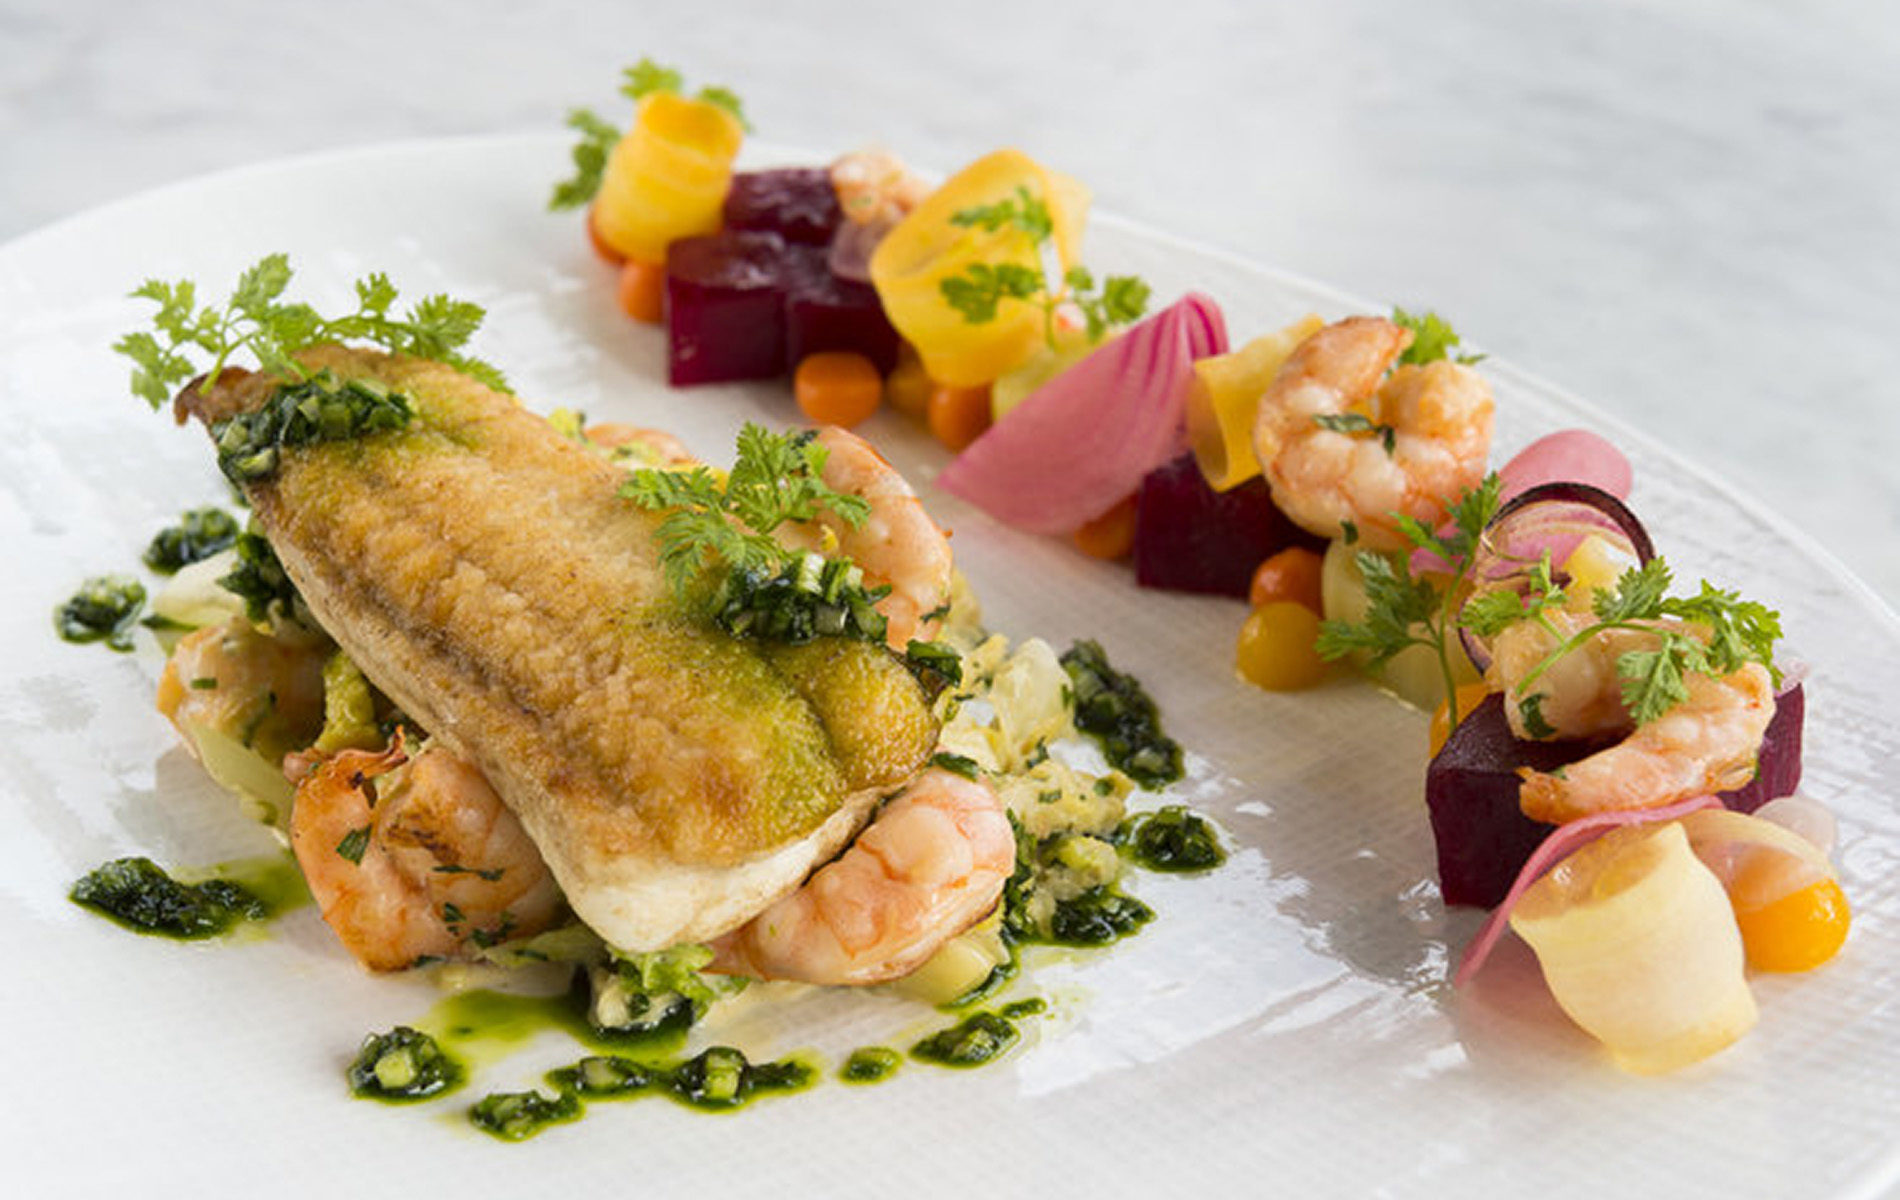 fried fish on top of shrimp and dots of green sauce surrounded by beets and vegetables